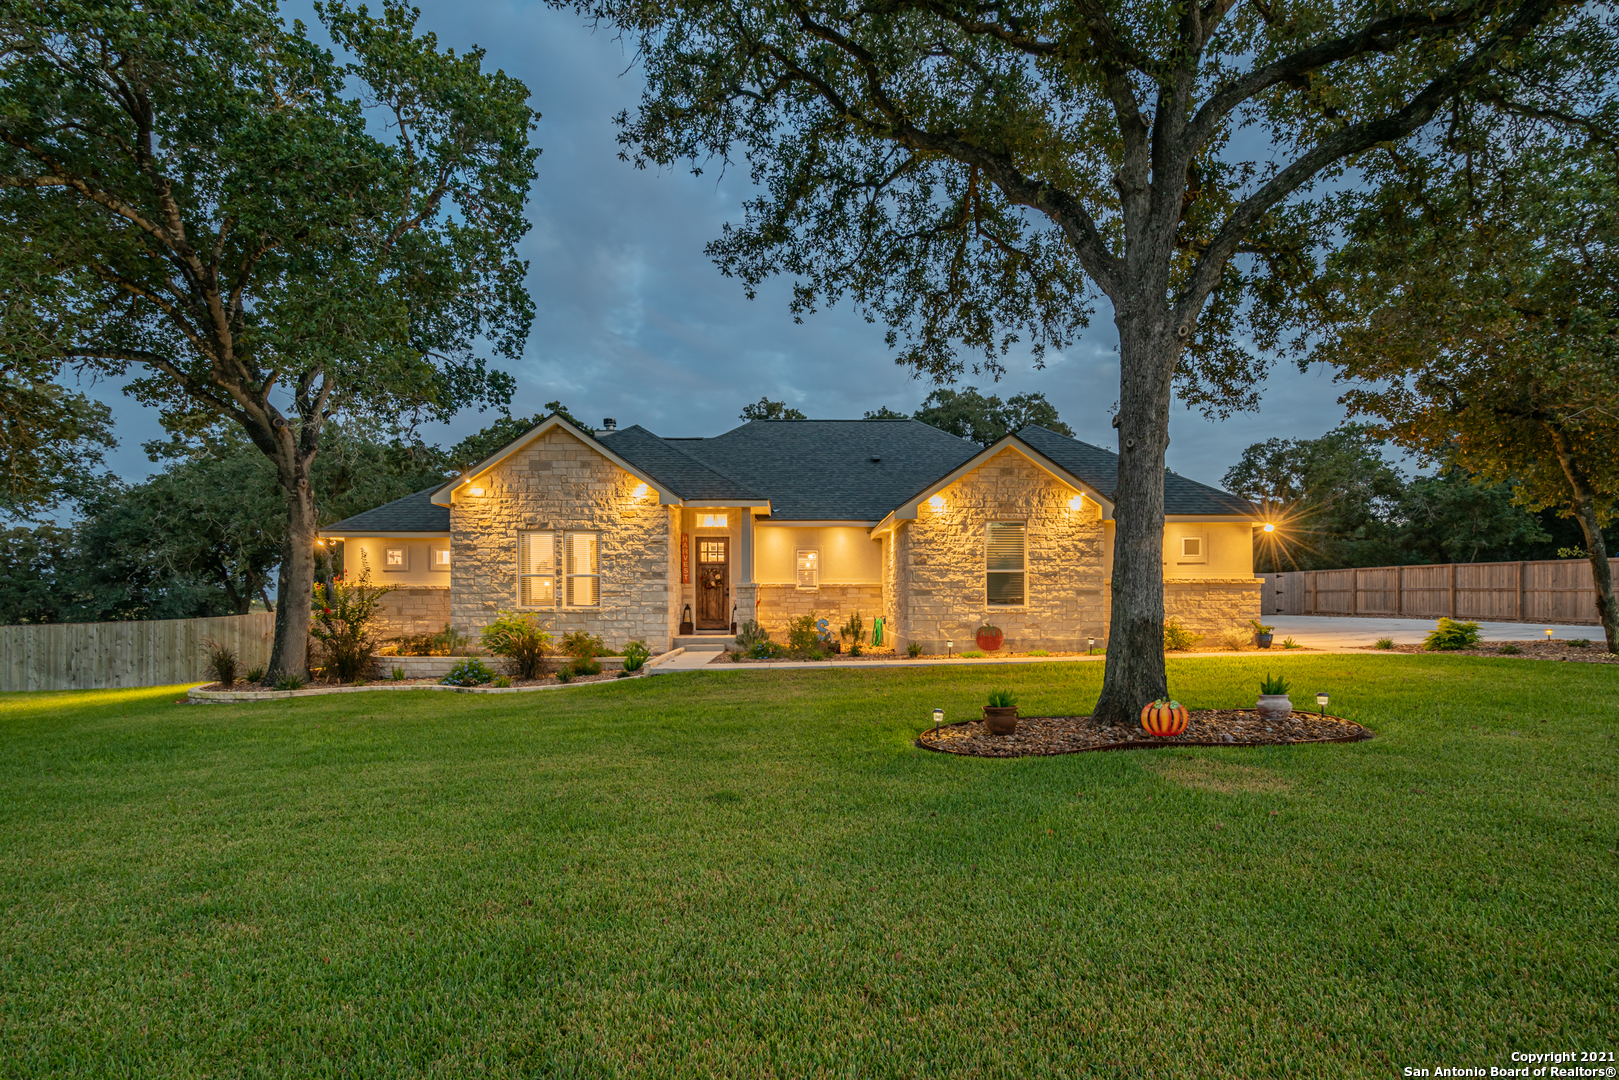 Why wait to buy your dream home?  Quality custom built home located on a 1 acre lot that is loaded with upgrades! Open floorplan beaming with natural light, spacious kitchen that opens up to living room and features Quartizite Leather Finish Countertops, Upgraded LG Appliances, Upgraded Backsplash, Custom Cabinets and Stylish Pendant Bar lights. Master Suite has  recessed ceiling, crown molding, and private outdoor access. Master bath is custom designed with 2-large walk in closets, dual vanities and oversized walk in shower. Spacious guest bedrooms include